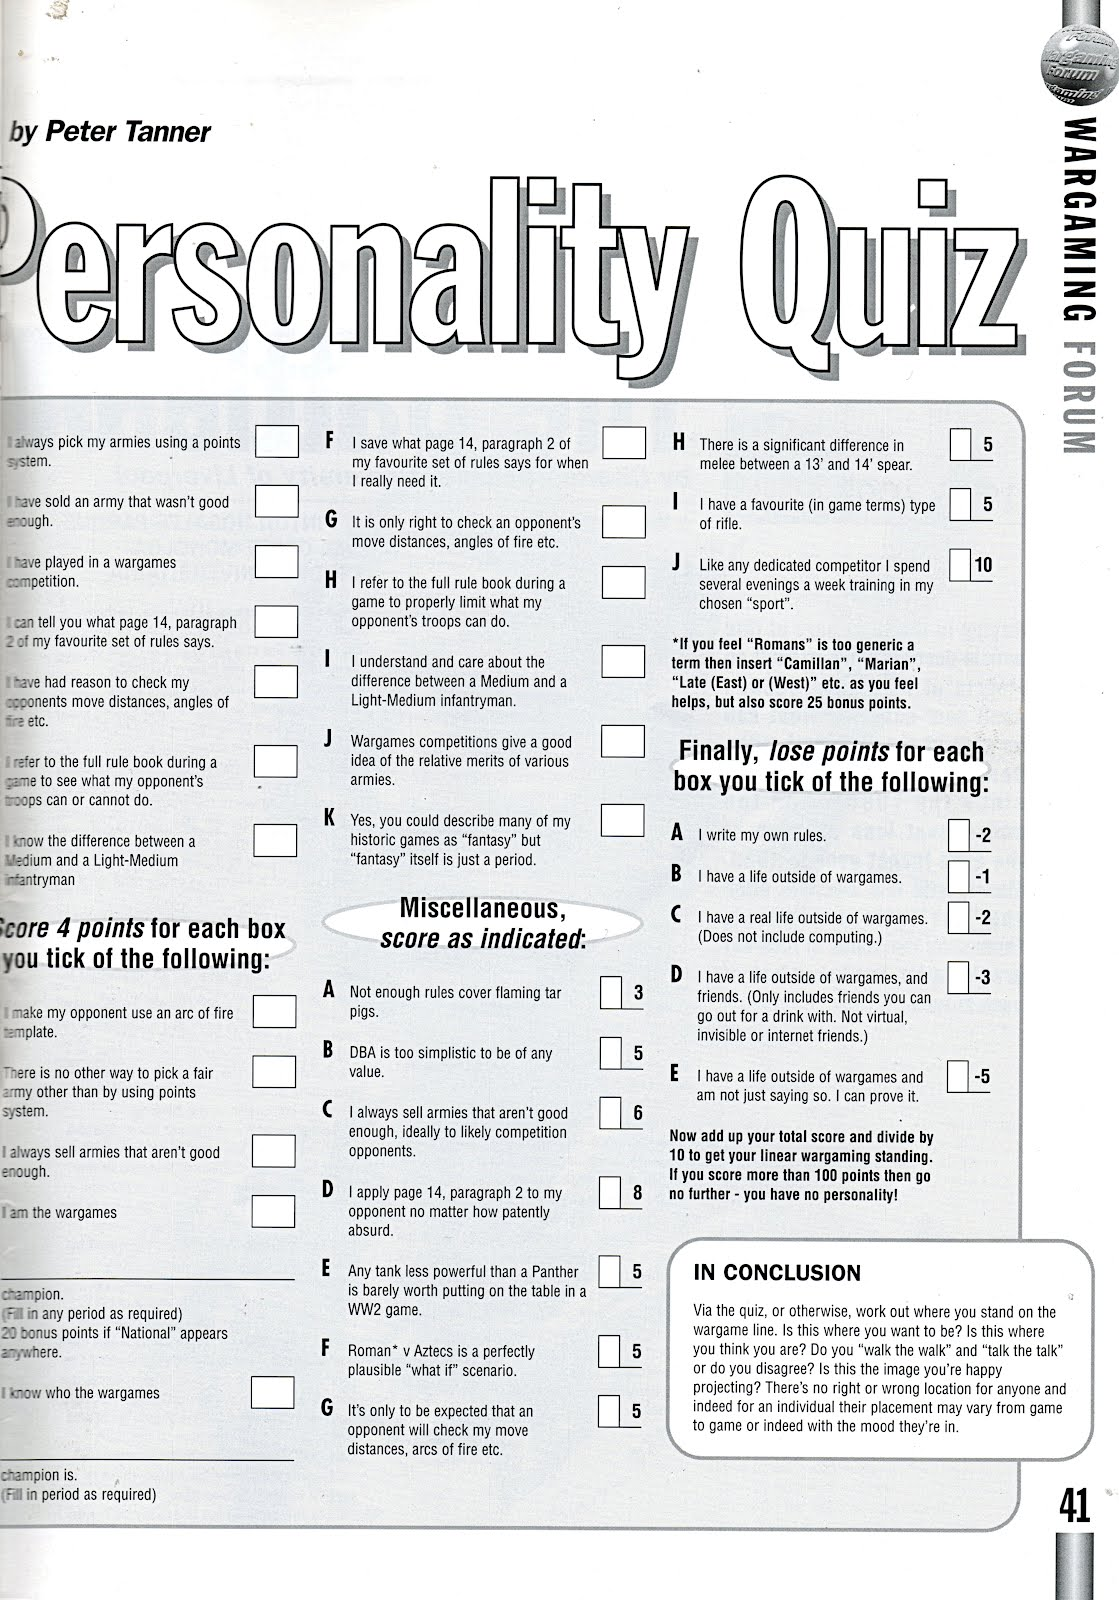 Vintage Wargaming Wargamers Personality Test By Peter